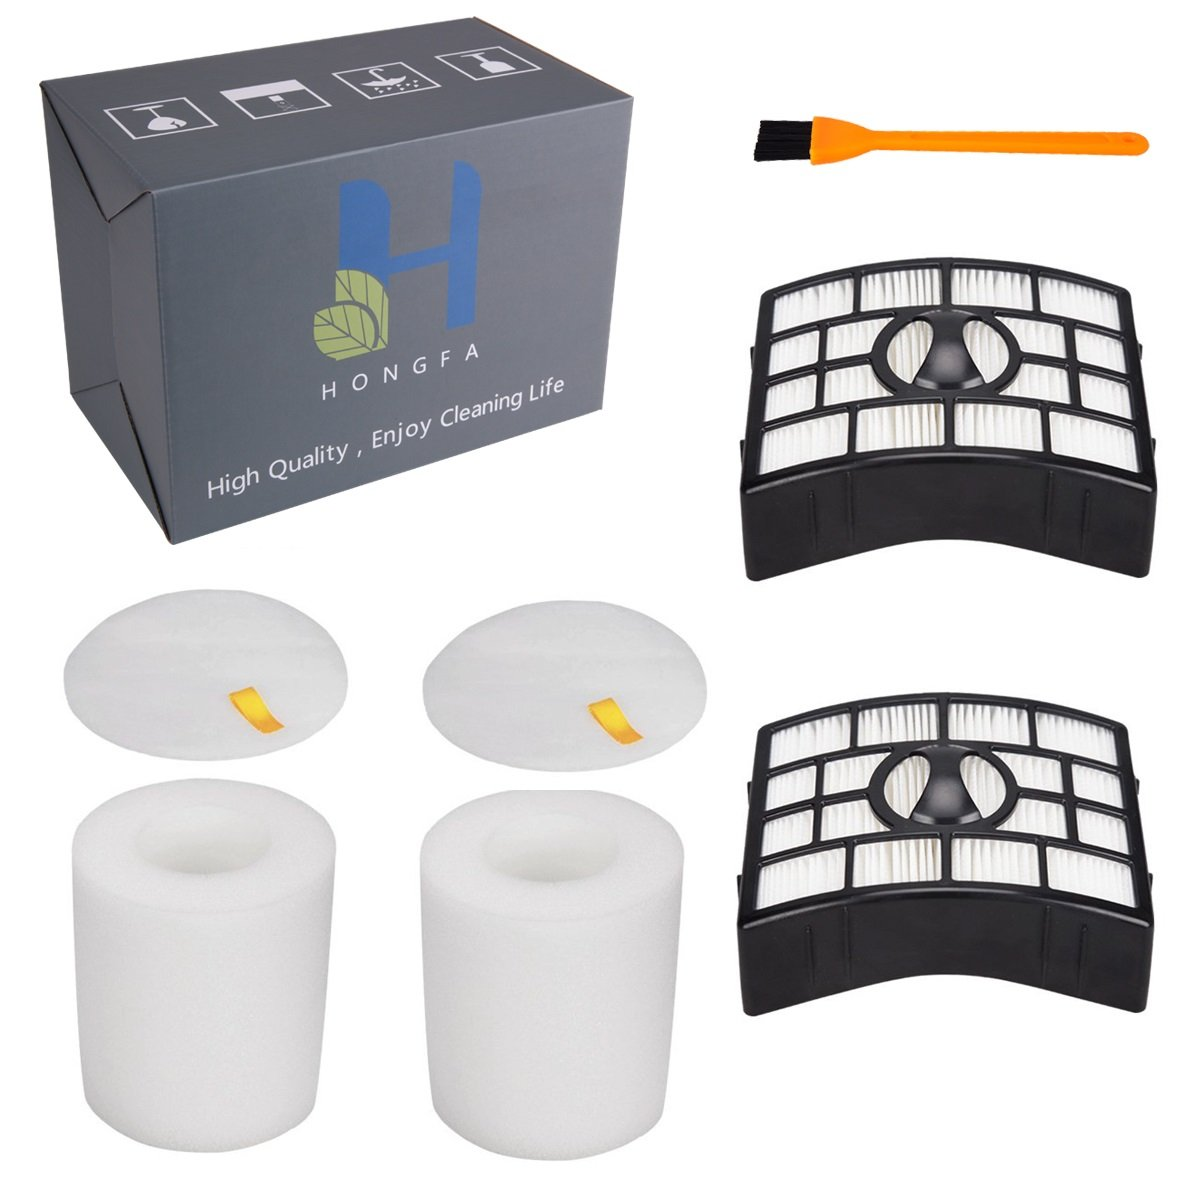 2Pack Hepa Filter & Foam Flet Filter for Shark Rotator Powered Lift-Away NV752 NV751 NV650 NV750 (Not Fit NV500 NV680 Series) Replacement parts with 1pcs Cleaning Brush Replace Parts # XFF650